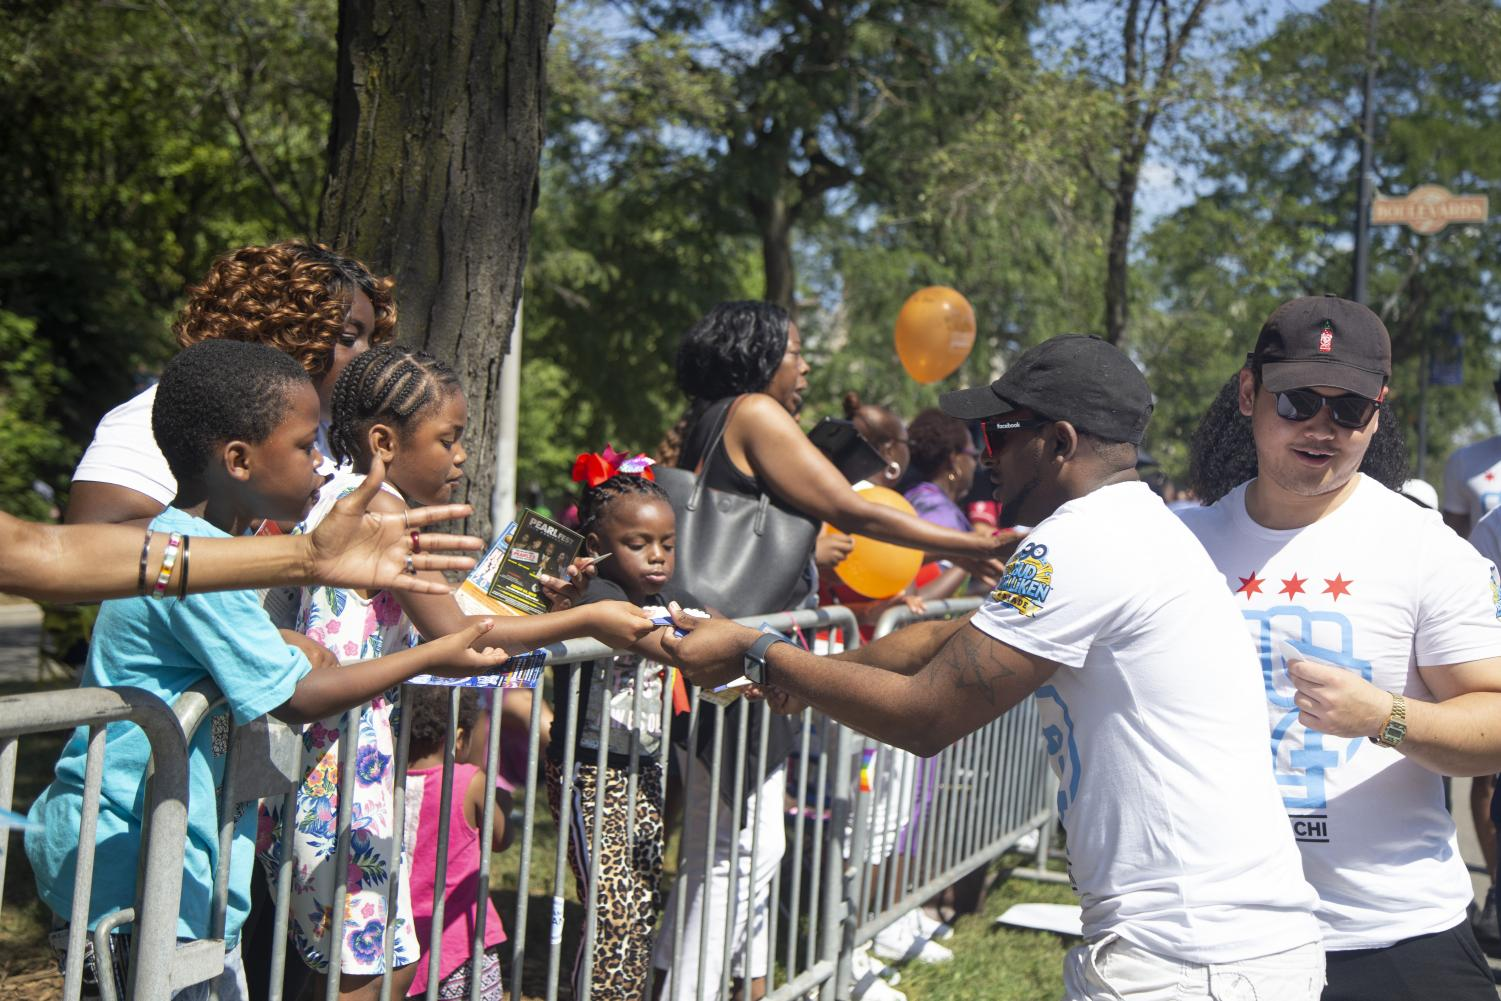 Facebook+Chicago+hands+out+candy+to+the+crowd+at+the+Bud+Billiken+Parade.